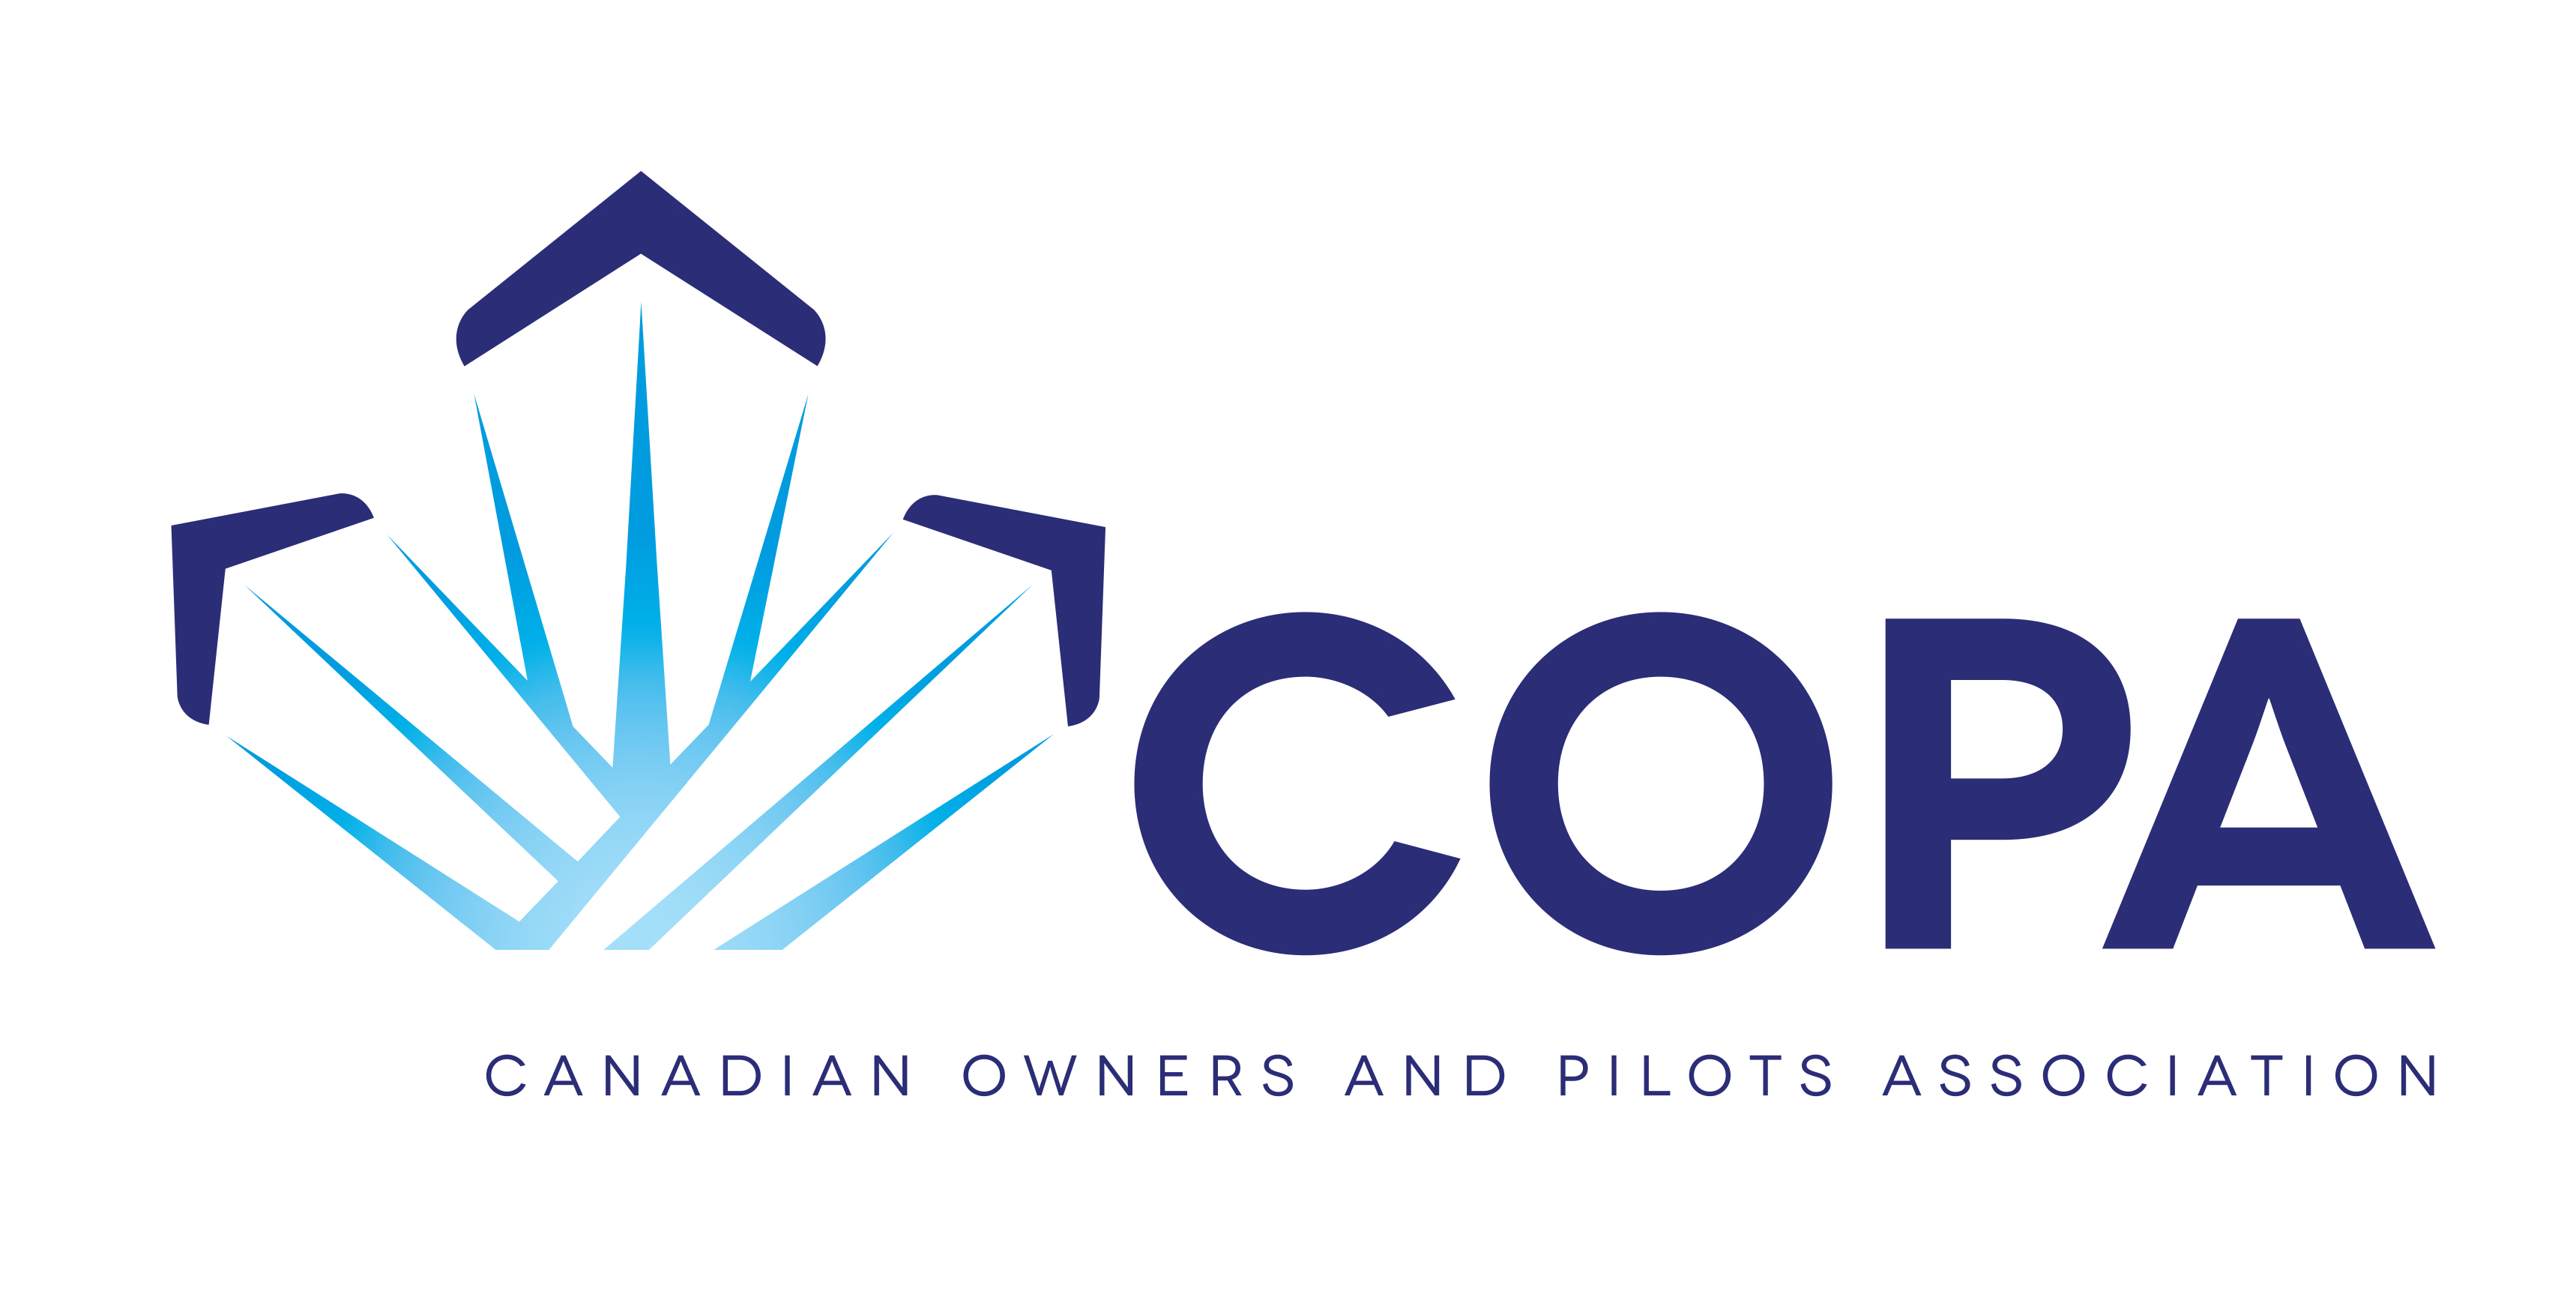 Canadian Owners and Pilots Association (logo)